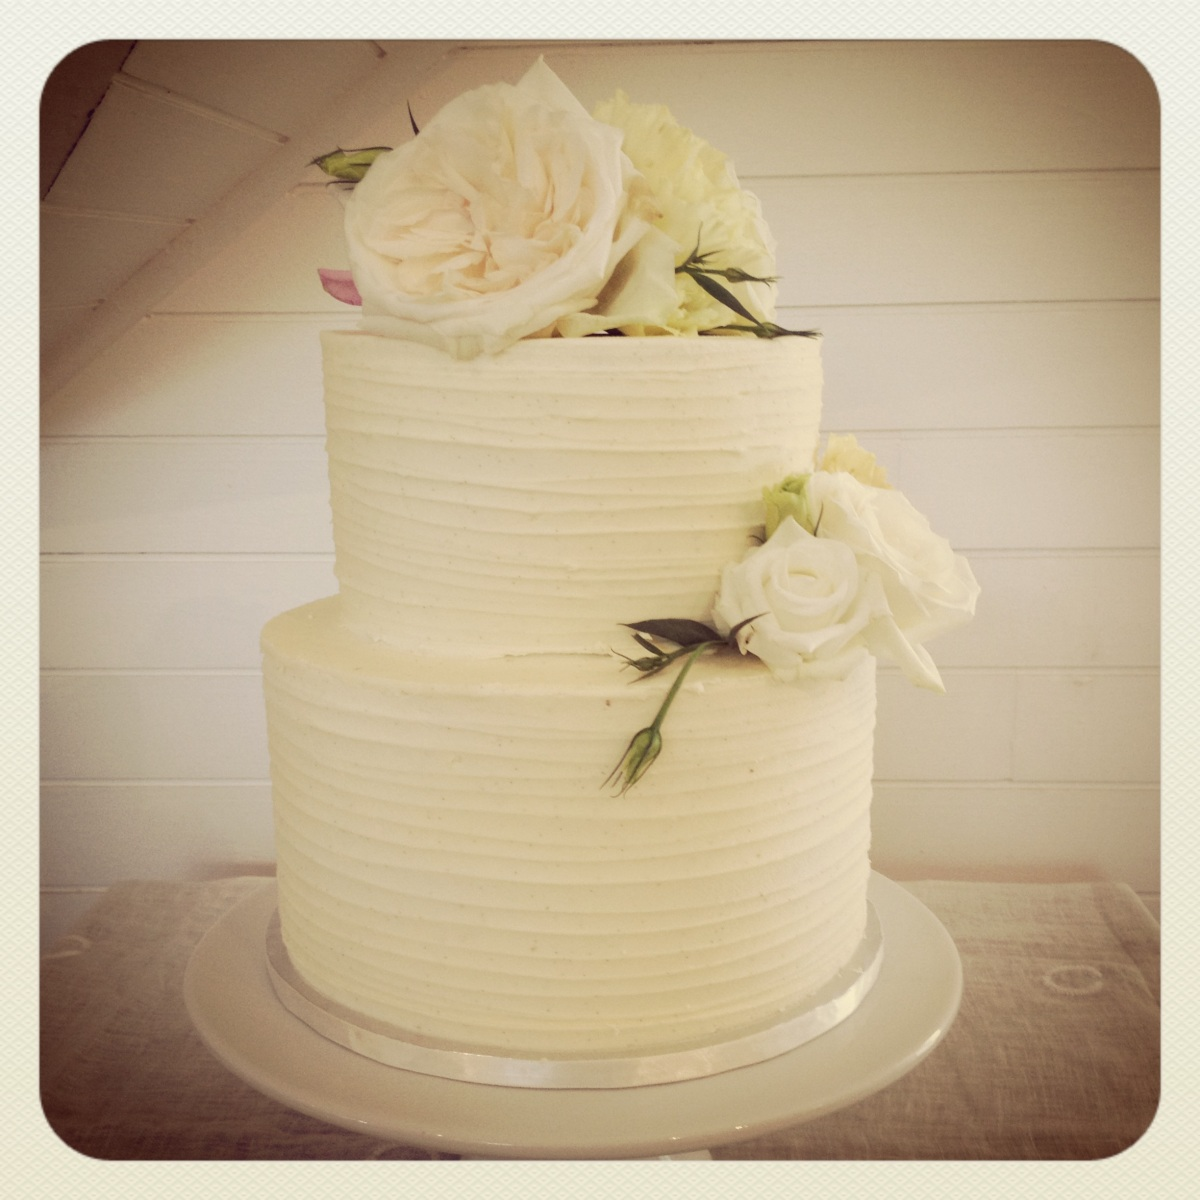 Average Cost Of Wedding Flowers 2014: Two Tier Vanilla & Dark Chocolate Marble Cake